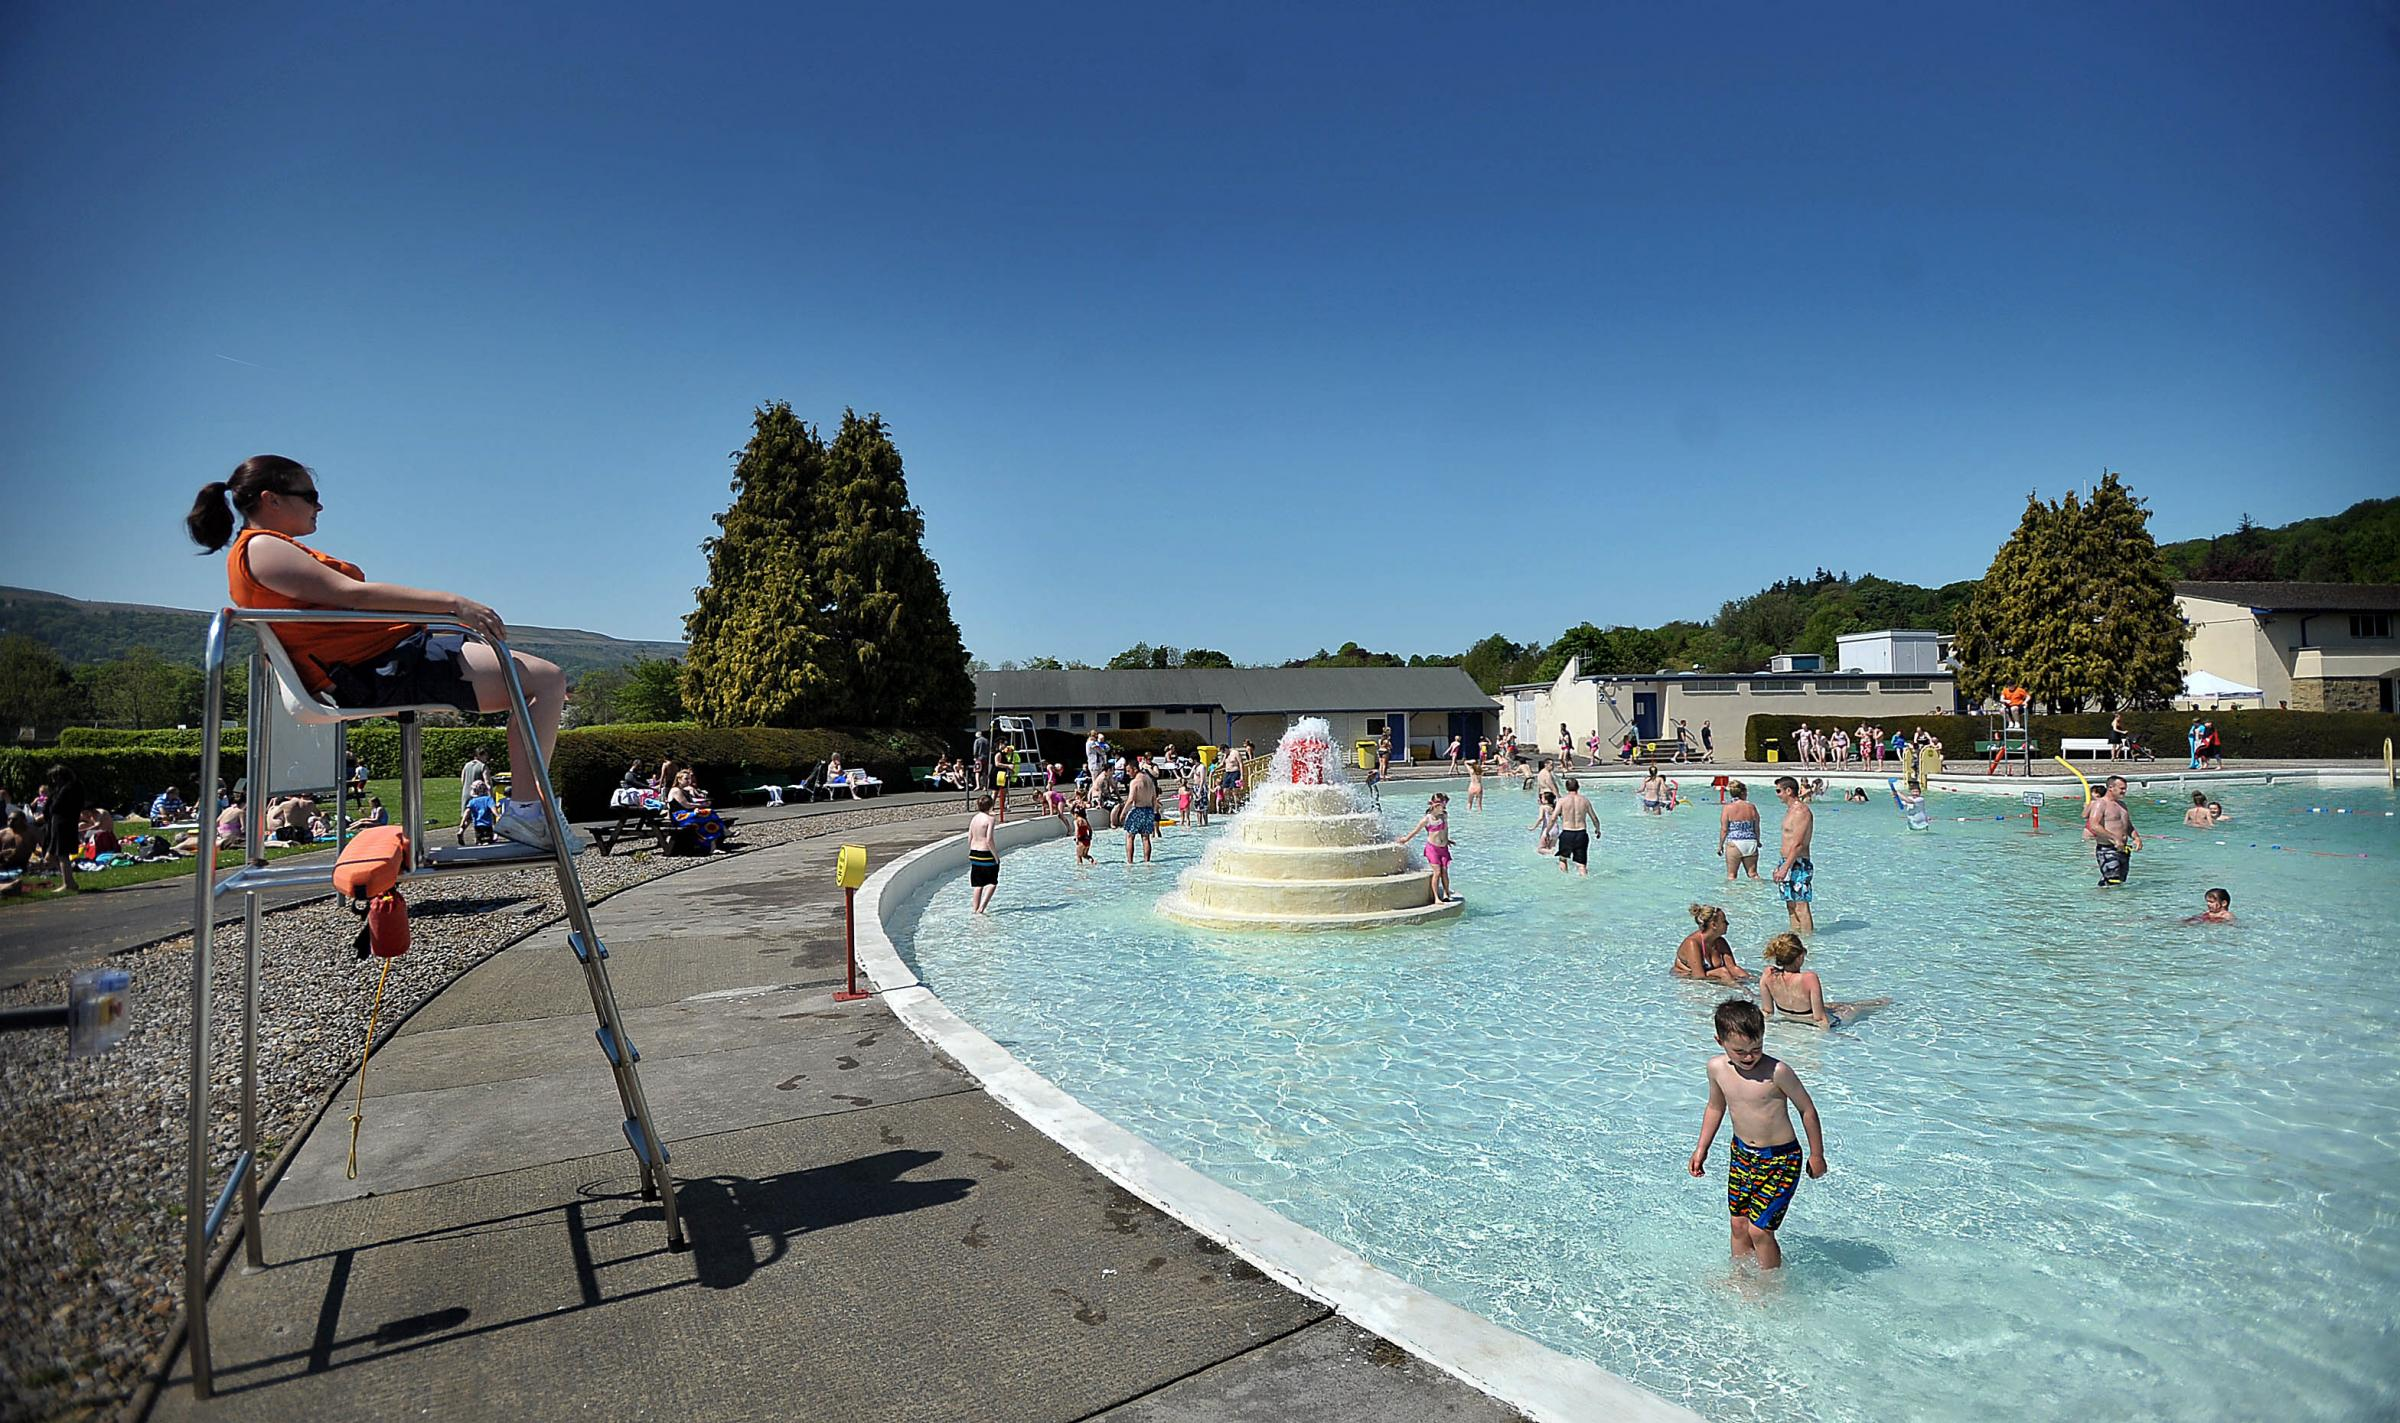 The pool at Ilkley Lido